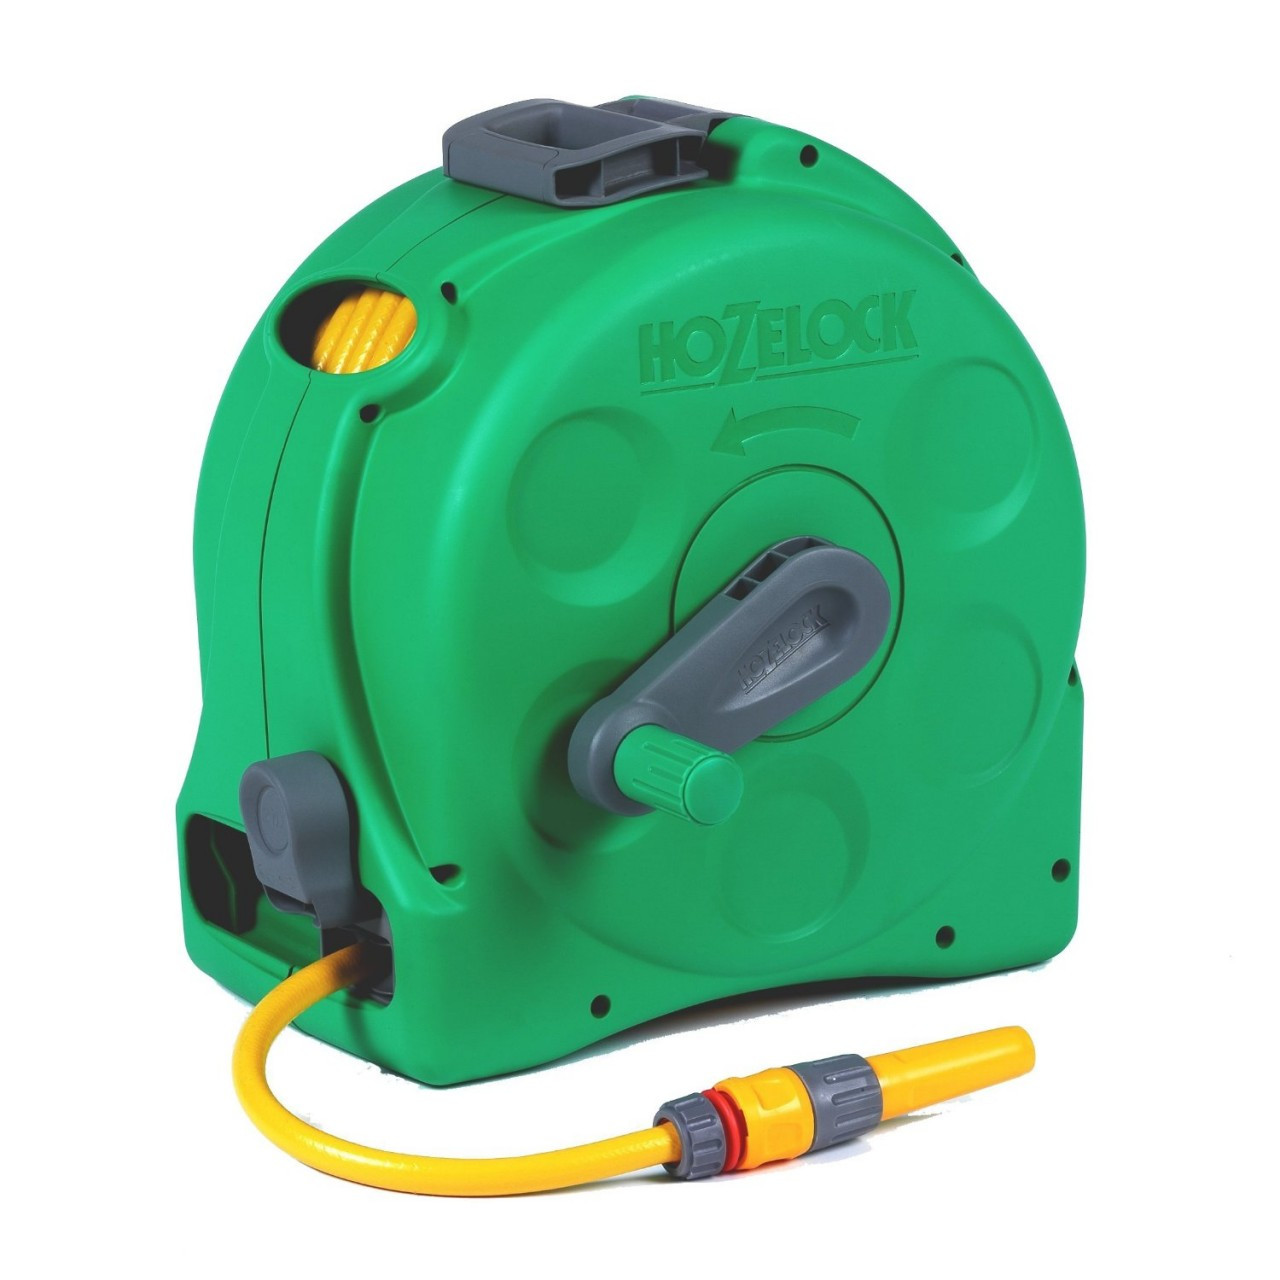 Hozelock Compact 2 in 1